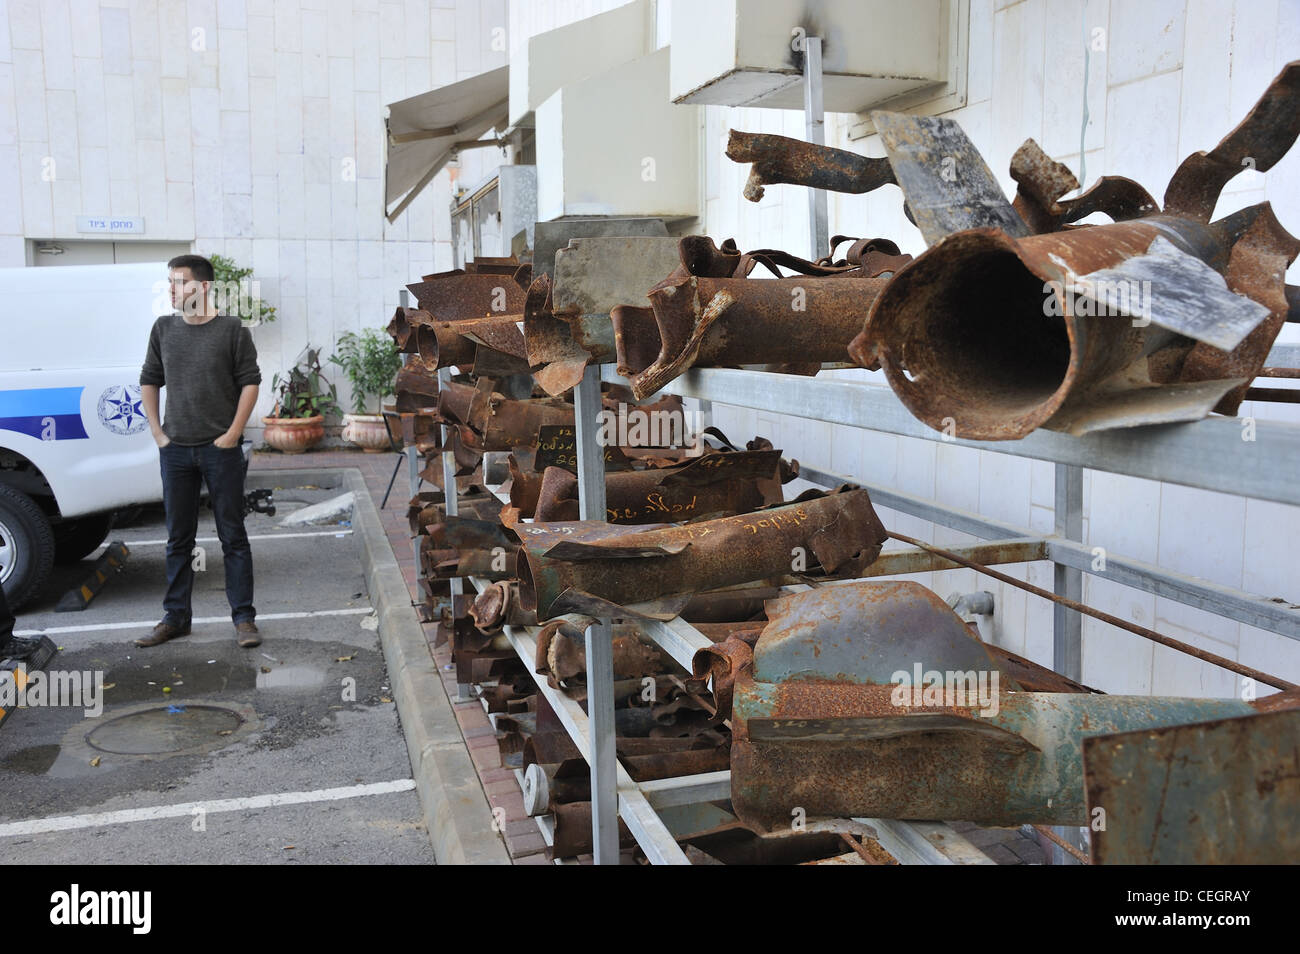 Remnants of exploded Qassam rockets that were fired from the Gaza Strip at Israel. - Stock Image